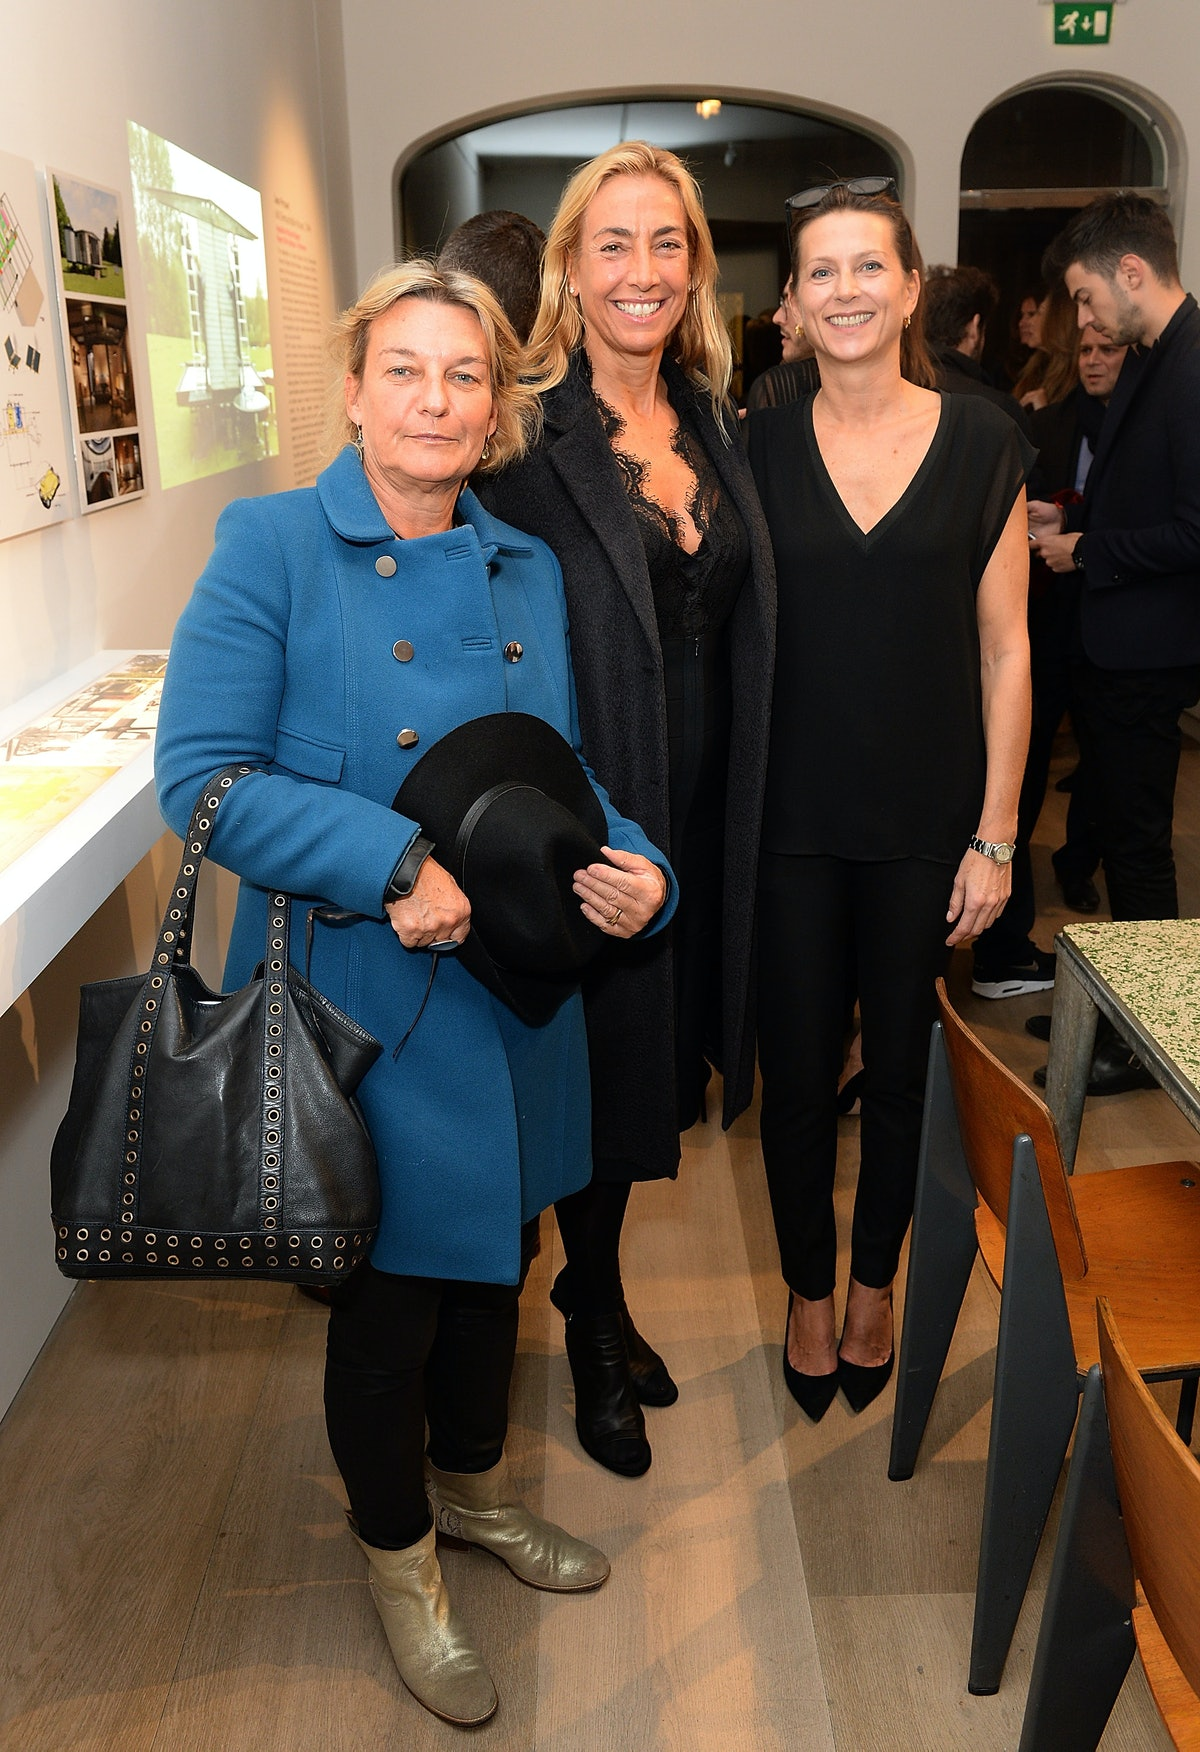 Patrick Seguin Host An Intimate Dinner In Celebration Of The Opening Of Their London Gallery